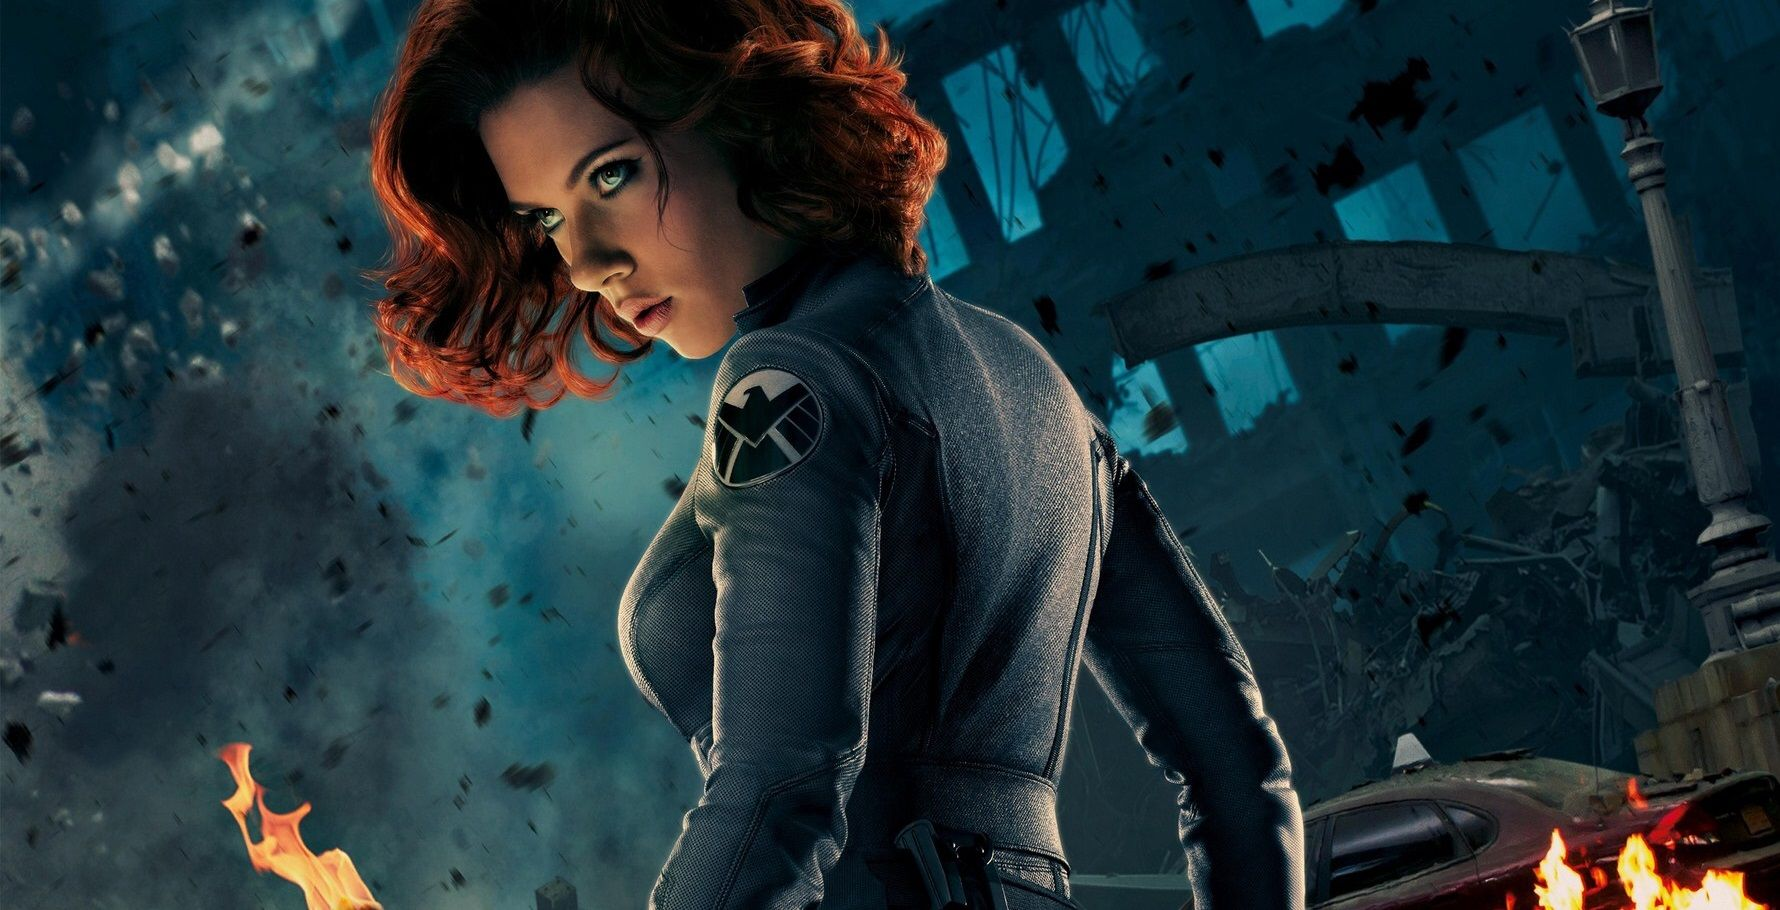 10 Facts About Natasha Romanoff Before She Became Black Widow